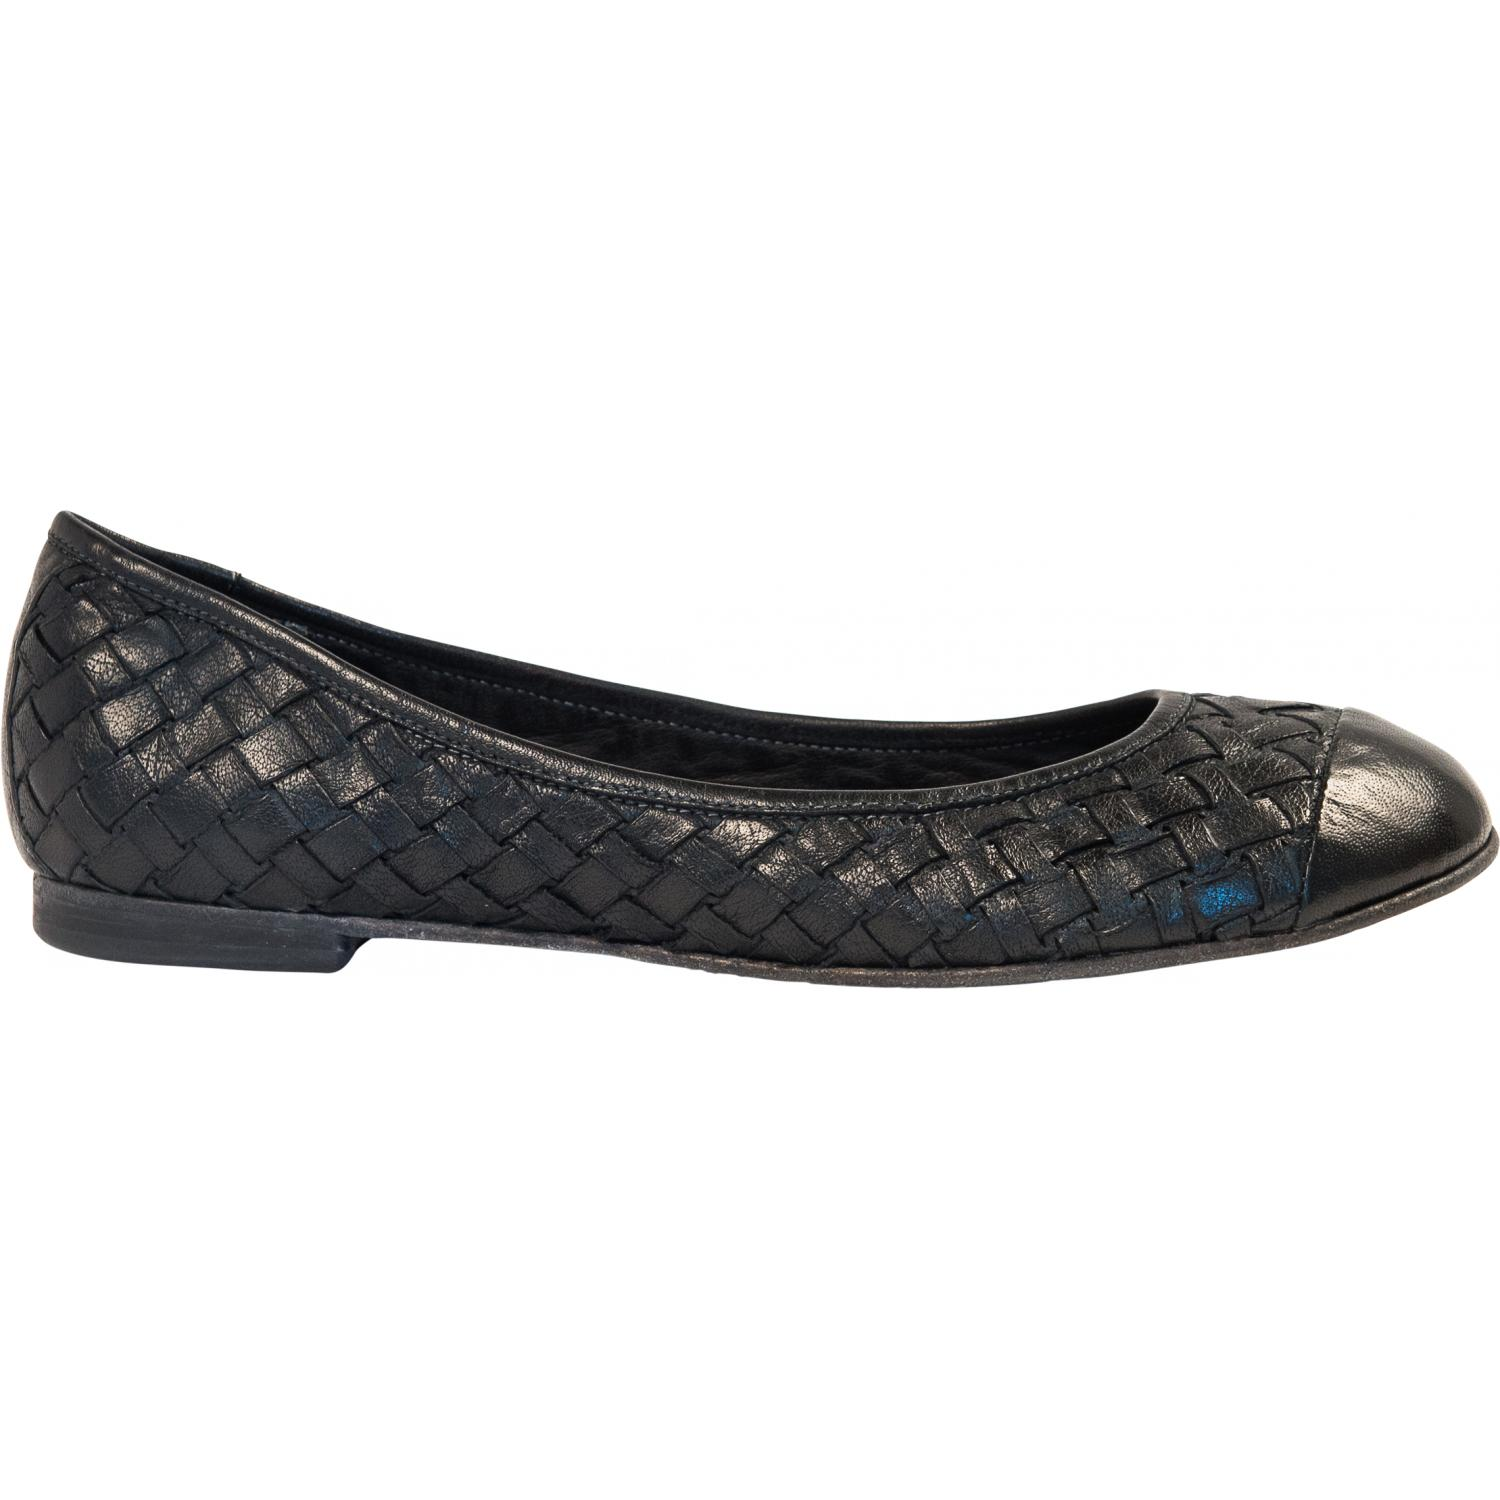 ad93b88a8 ... Kate Dip Dyed Black Woven Leather Ballerina Flats thumb #4 ...